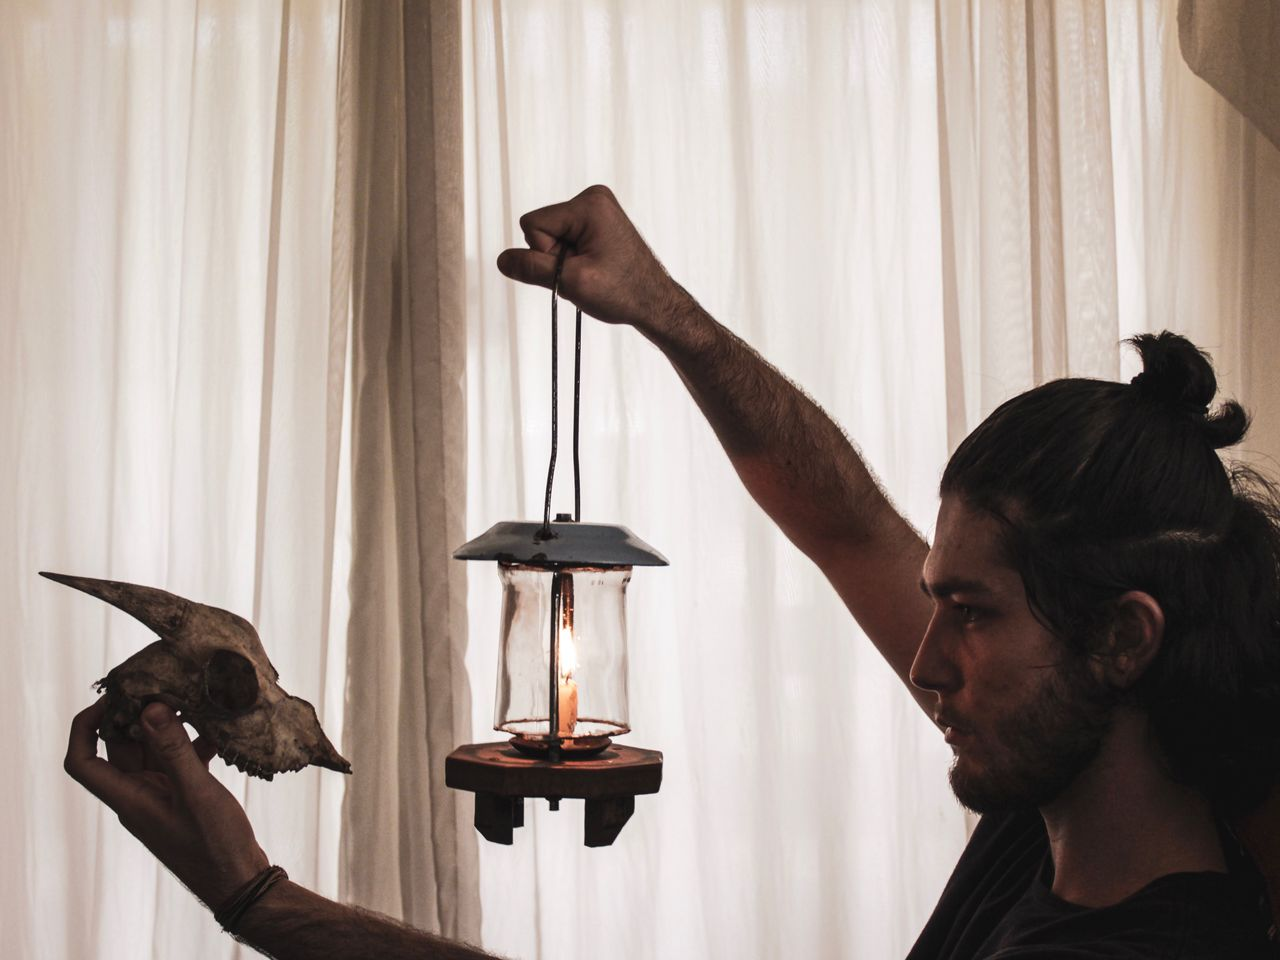 Profile view of young man holding animal skull and lantern against white curtain